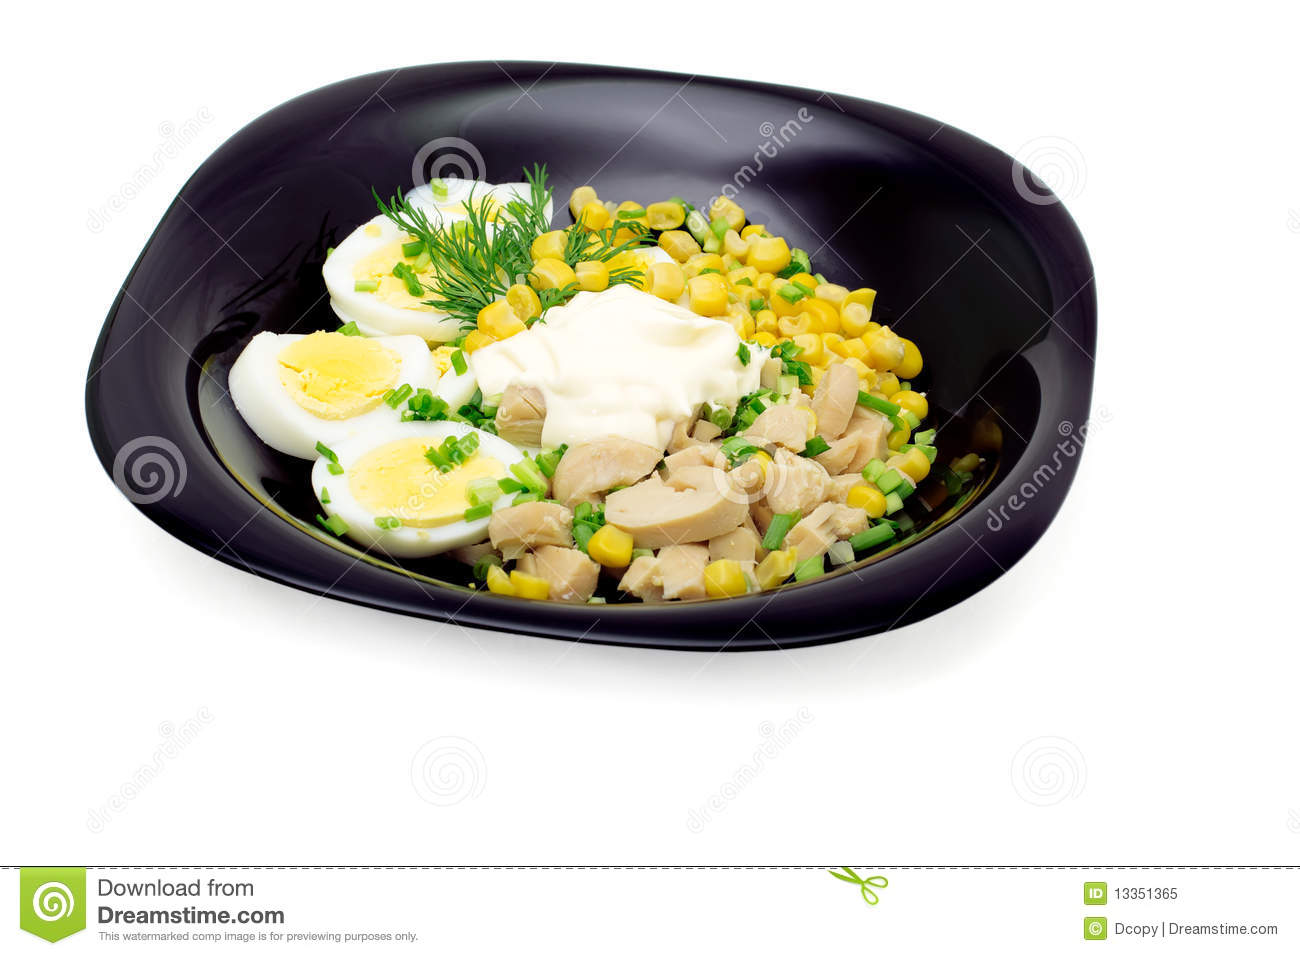 Salad of squid meat, eggs, canning corn with mayon